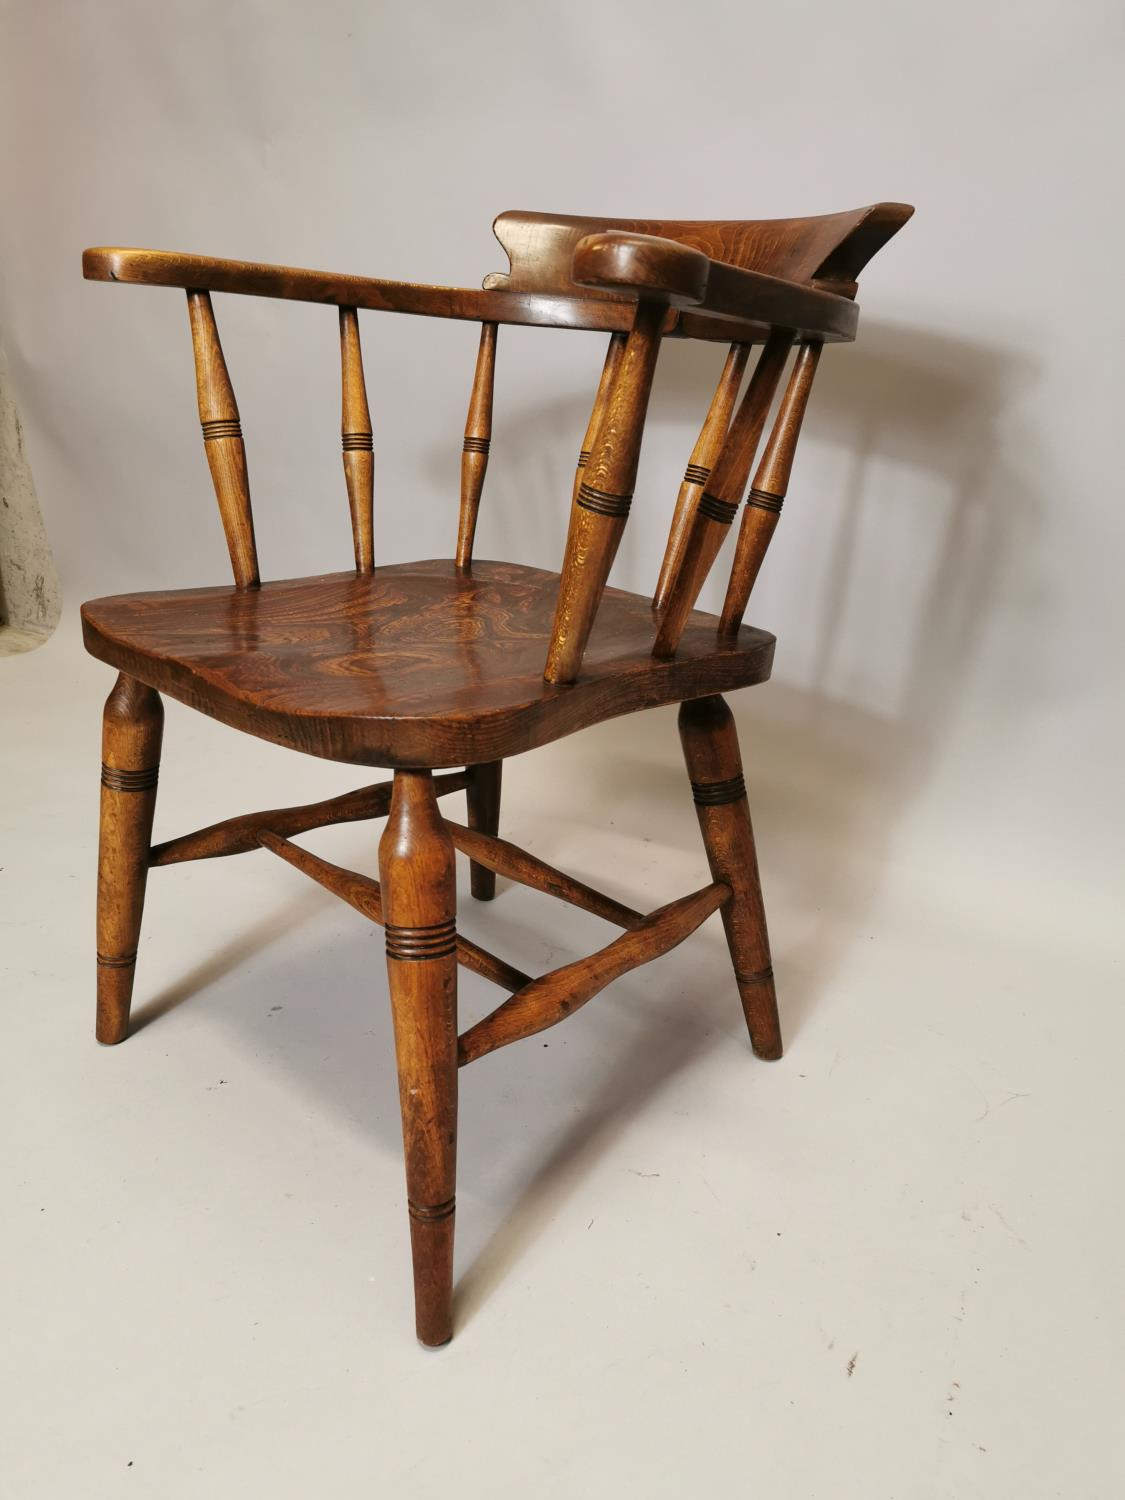 Early 20th C. Ash and elm smoker's bow - Image 5 of 7